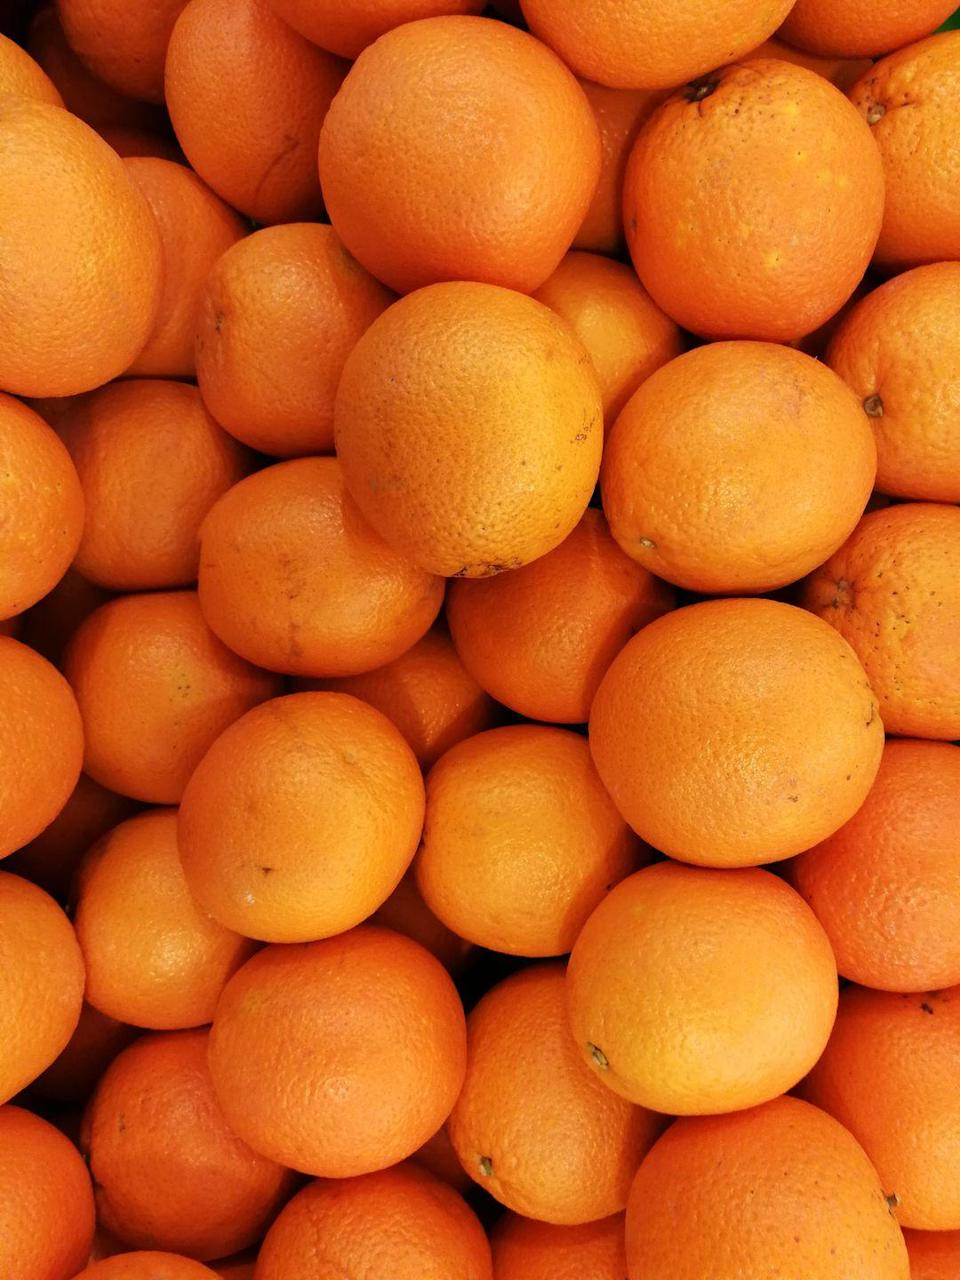 """<p>One orange supplies more than 100% of the <a href=""""https://www.medicalnewstoday.com/articles/272782.php"""" rel=""""nofollow noopener"""" target=""""_blank"""" data-ylk=""""slk:vitamin C"""" class=""""link rapid-noclick-resp"""">vitamin C </a>you need in a day. It's also a good source of calcium and folate.</p><p><strong>Recipe to try:</strong> <a href=""""https://www.womansday.com/food-recipes/food-drinks/recipes/a25870/orange-peppercorn-chicken-recipe/"""" rel=""""nofollow noopener"""" target=""""_blank"""" data-ylk=""""slk:Orange-Peppercorn Chicken"""" class=""""link rapid-noclick-resp"""">Orange-Peppercorn Chicken</a></p>"""